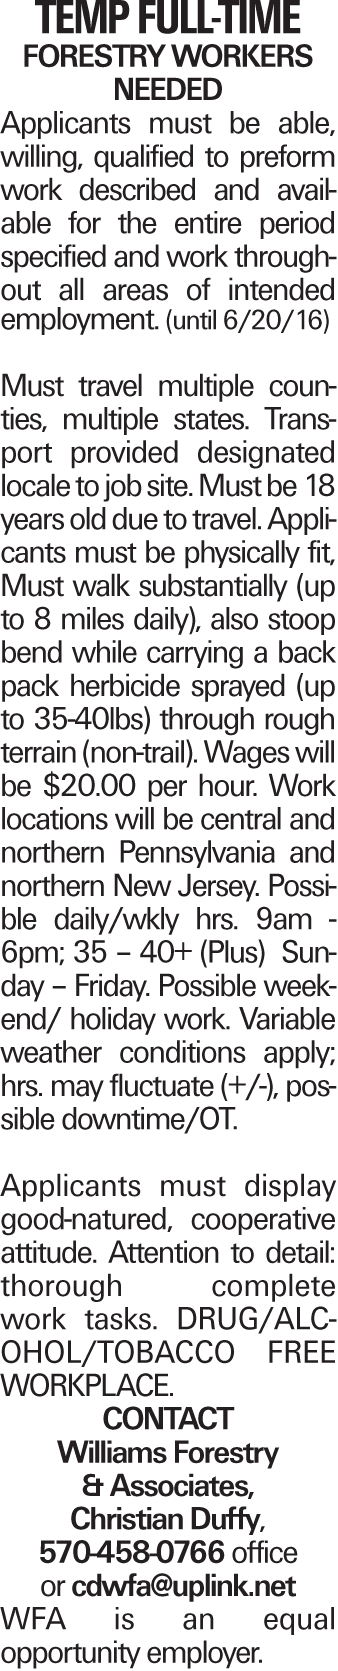 Temp Full-time Forestry Workers Needed Applicants must be able, willing, qualified to preform work described and available for the entire period specified and work throughout all areas of intended employment. (until 6/20/16) Must travel multiple counties, multiple states. Transport provided designated locale to job site. Must be 18 years old due to travel. Applicants must be physically fit, Must walk substantially (up to 8 miles daily), also stoop bend while carrying a back pack herbicide sprayed (up to 35-40lbs) through rough terrain (non-trail). Wages will be $20.00 per hour. Work locations will be central and northern Pennsylvania and northern New Jersey. Possible daily/wkly hrs. 9am -6pm; 35 - 40+ (Plus) Sunday - Friday. Possible weekend/ holiday work. Variable weather conditions apply; hrs. may fluctuate (+/-), possible downtime/OT. Applicants must display good-natured, cooperative attitude. Attention to detail: thorough complete work tasks. DRUG/ALC-OHOL/TOBACCO FREE WORKPLACE. Contact Williams Forestry & Associates, Christian Duffy, 570-458-0766 office or cdwfa@uplink.net WFA is an equal opportunity employer.